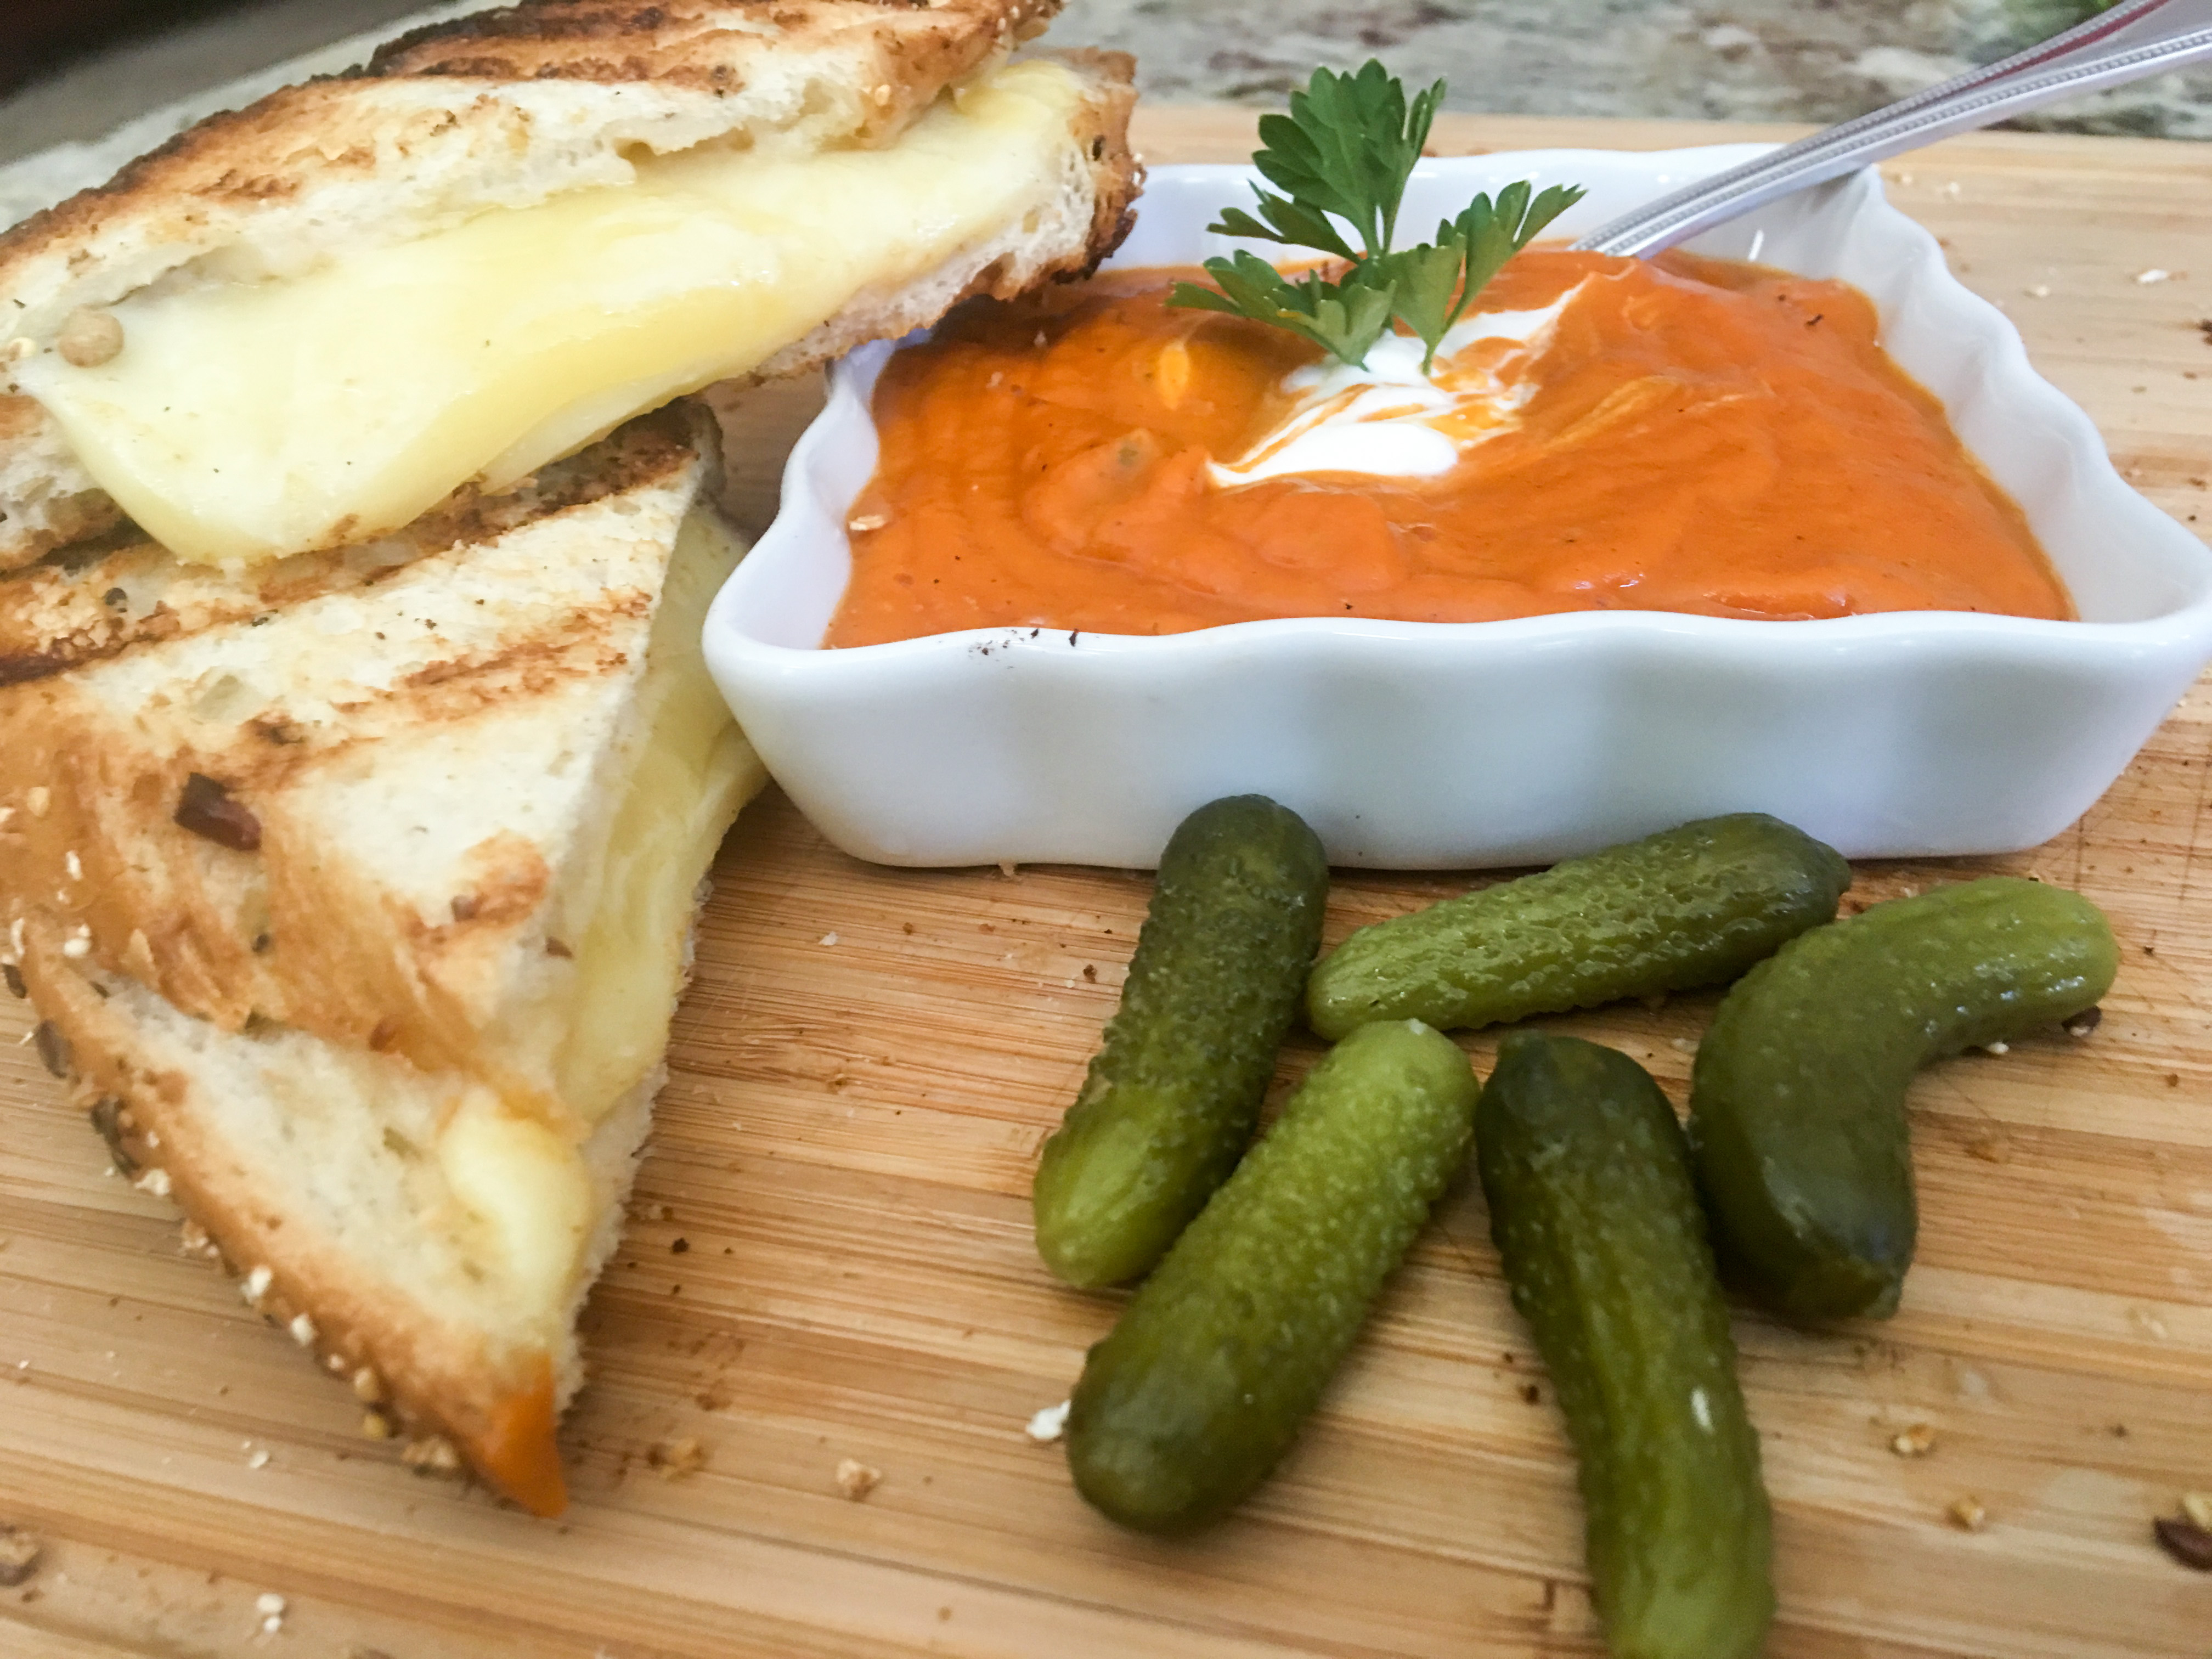 Healthy Grilled Cheese with a Side of Tomato Soup